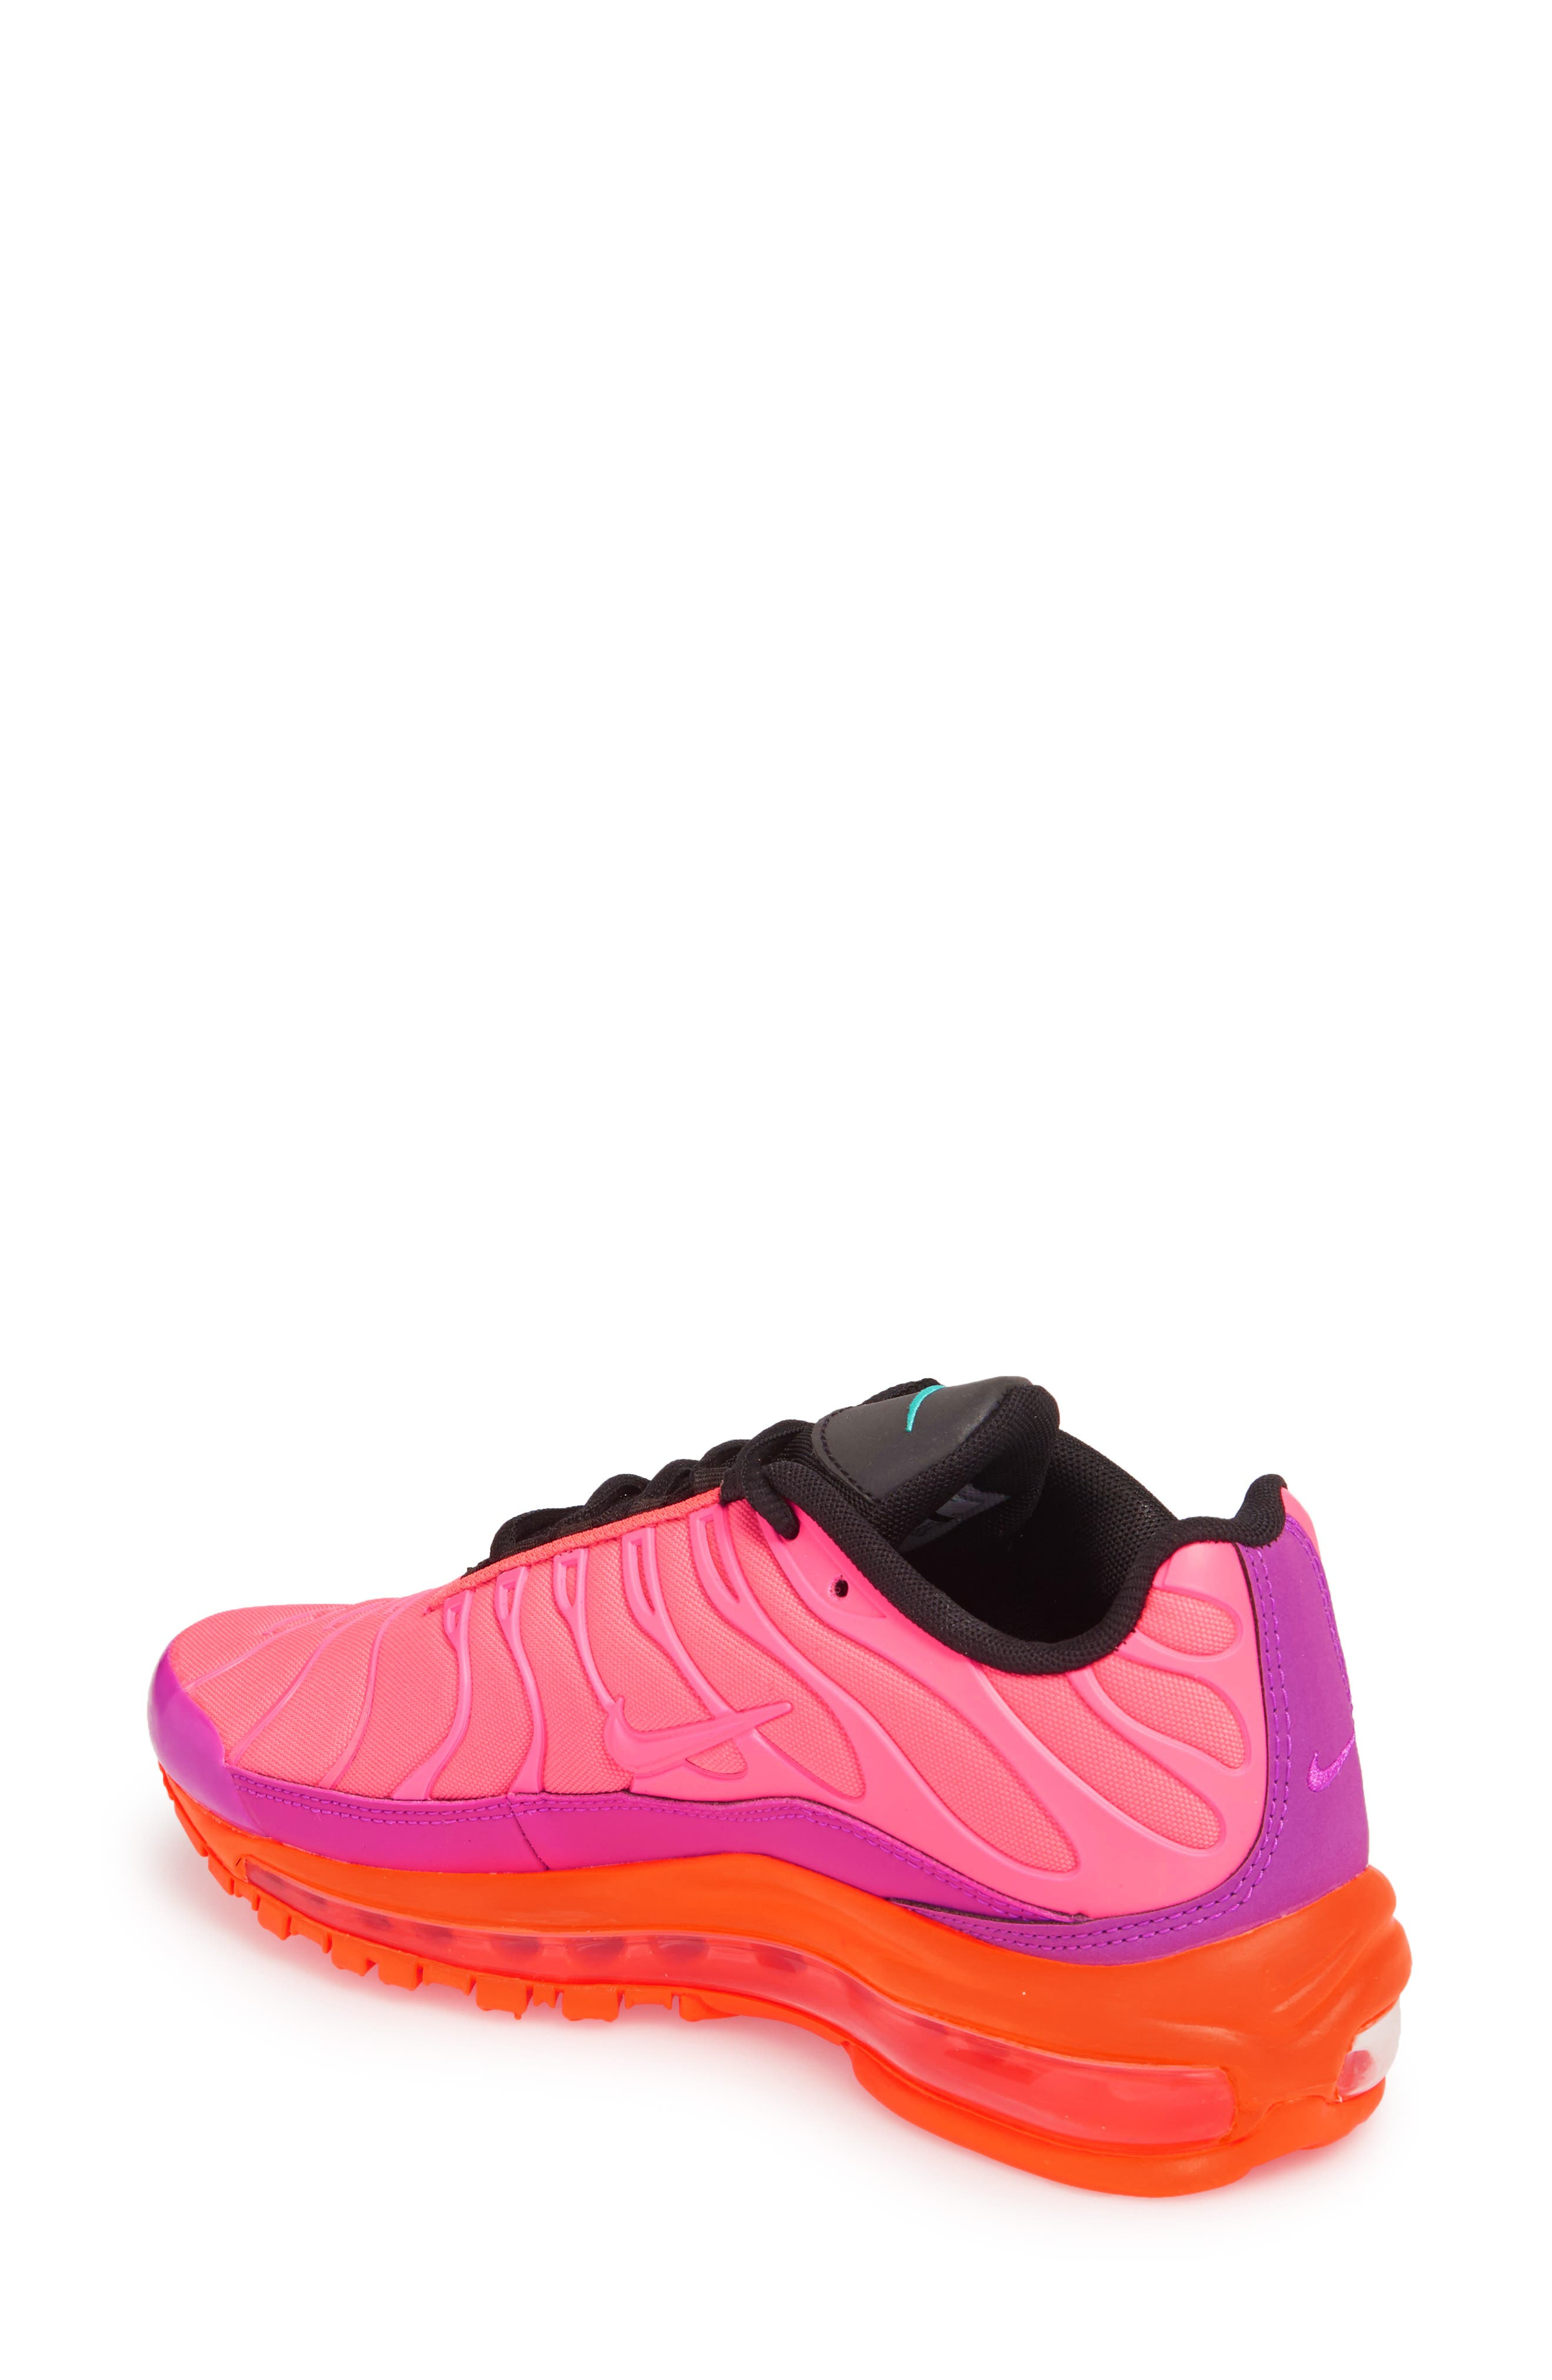 Air Max 97 Plus Sneaker,                             Alternate thumbnail 2, color,                             RACER PINK/ MAGENTA/ CRIMSON